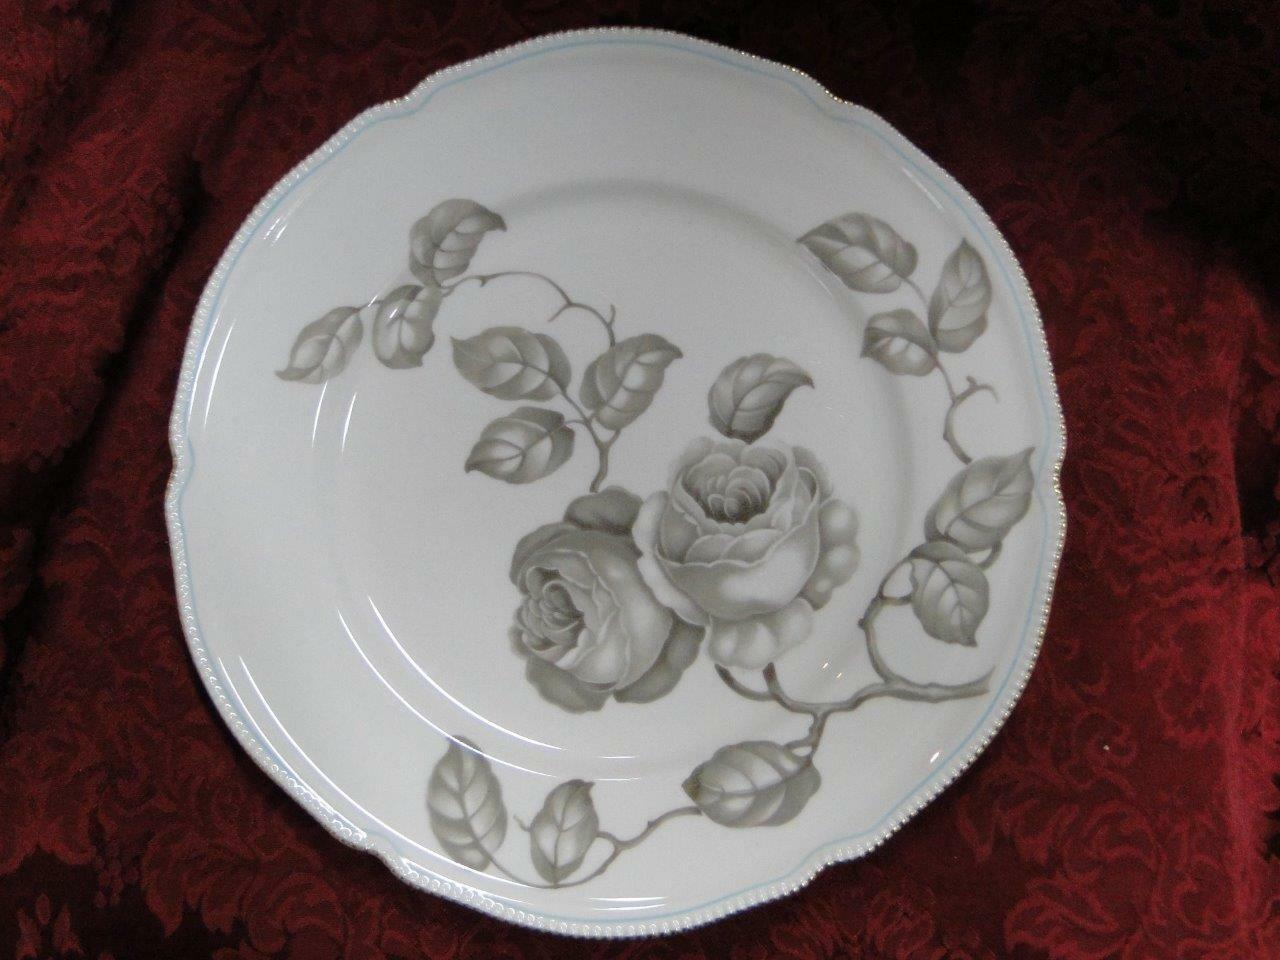 Castleton Gloria, Taupe Roses, Thin Blue Trim: Dinner Plate (s) 10 5/8""